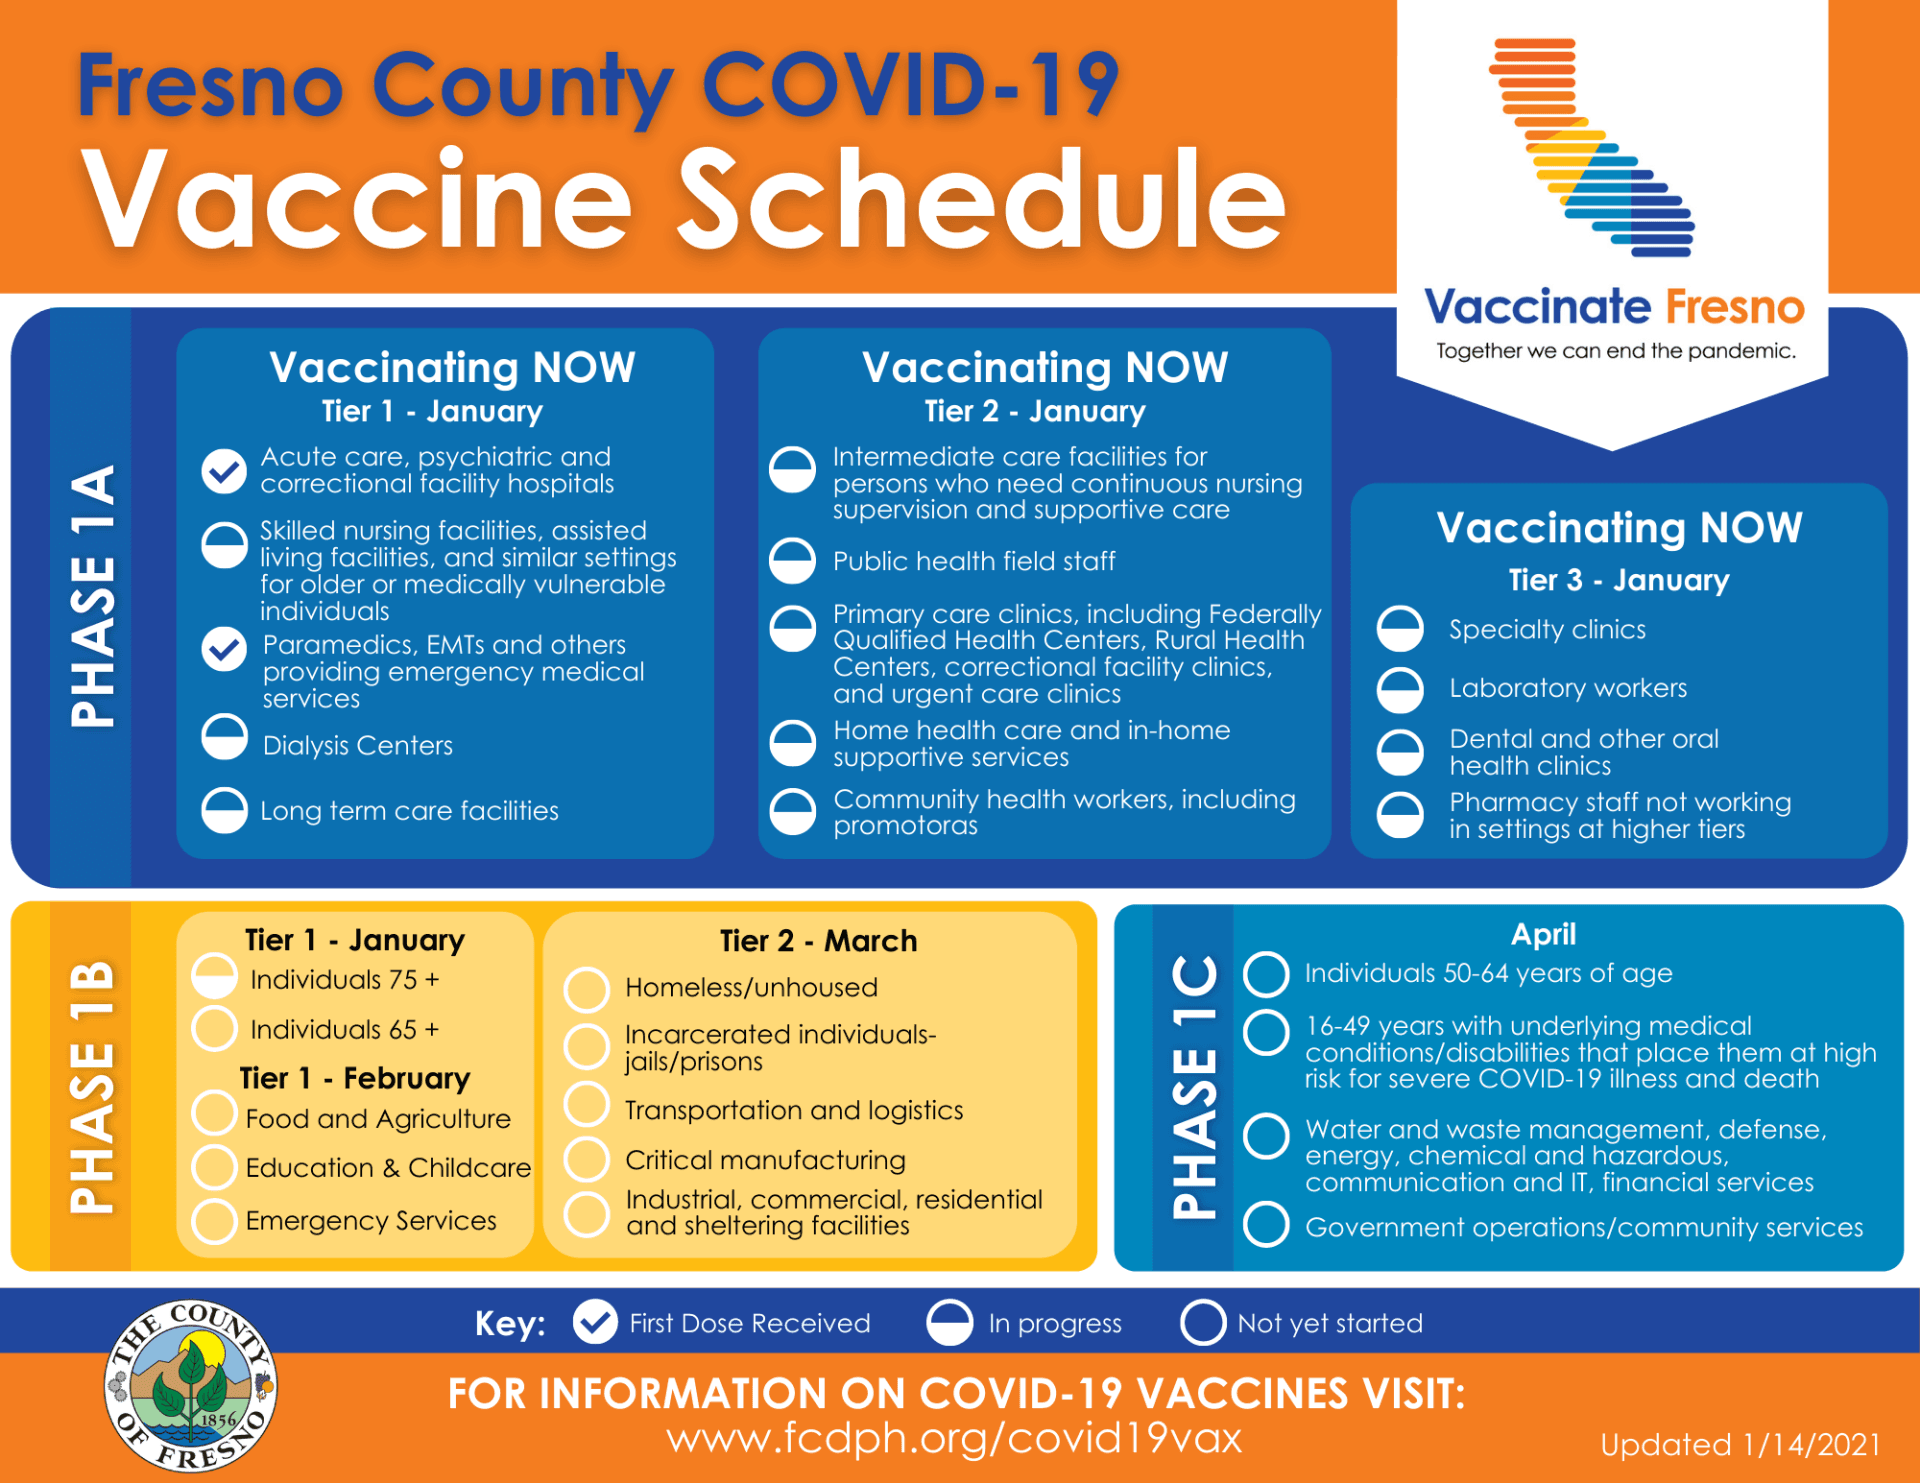 FCDPH COVID-19 Vaccine Schedule - Updated - 1-14-2021